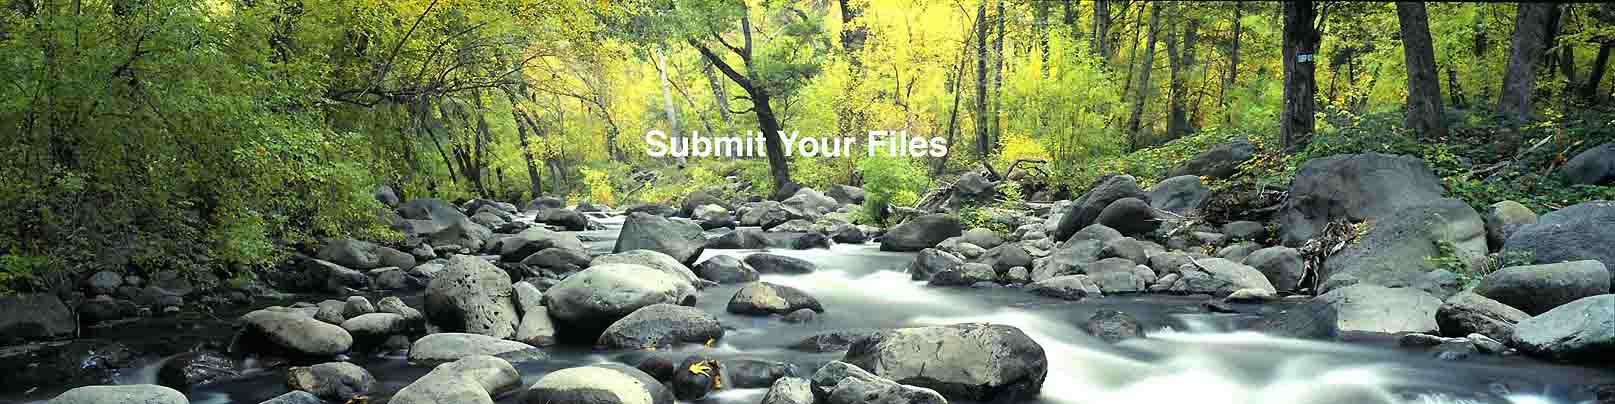 Submit your files